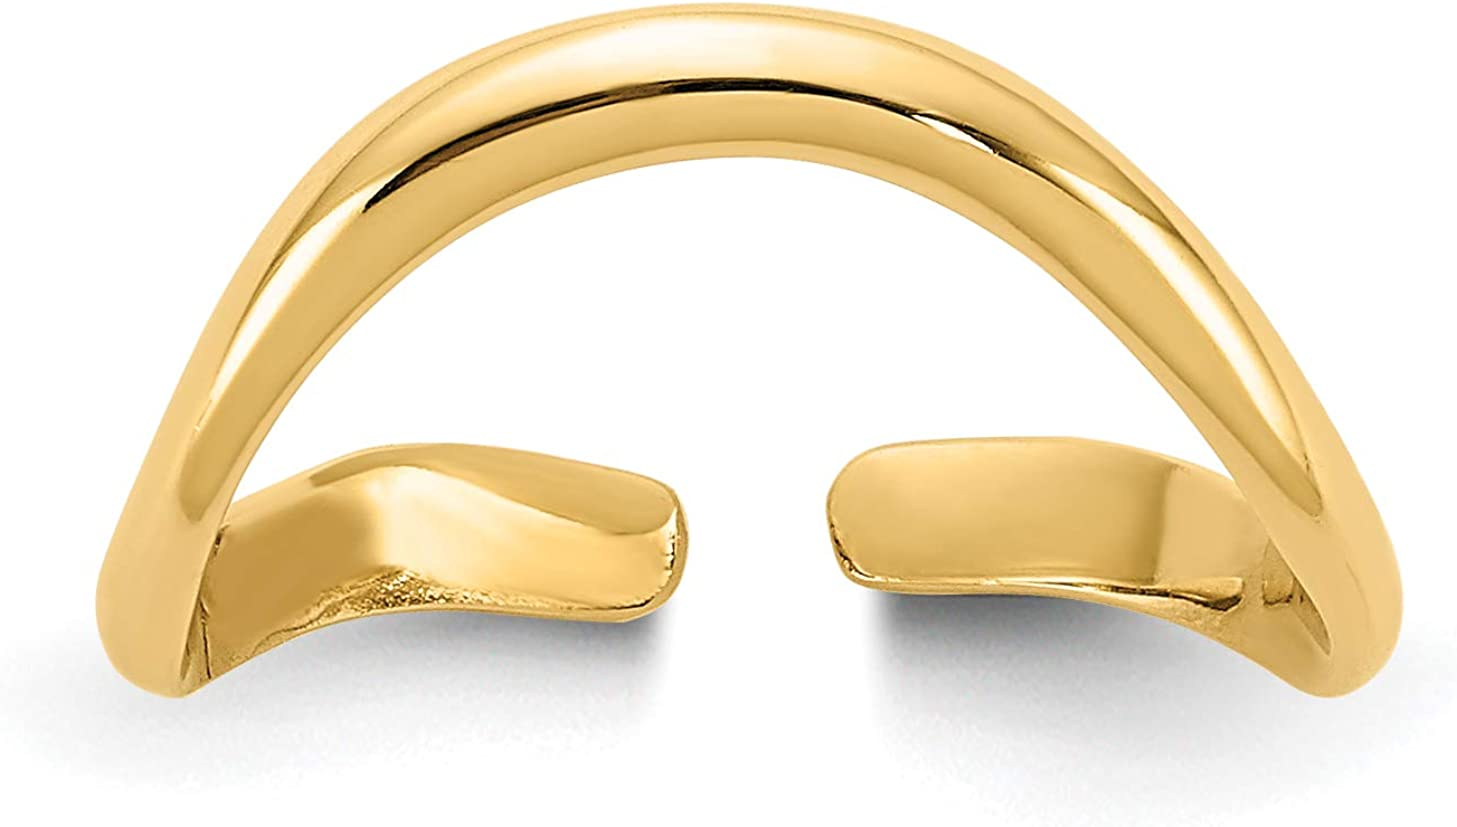 14k Yellow Gold Polished Single Curved Wave Toe Ring